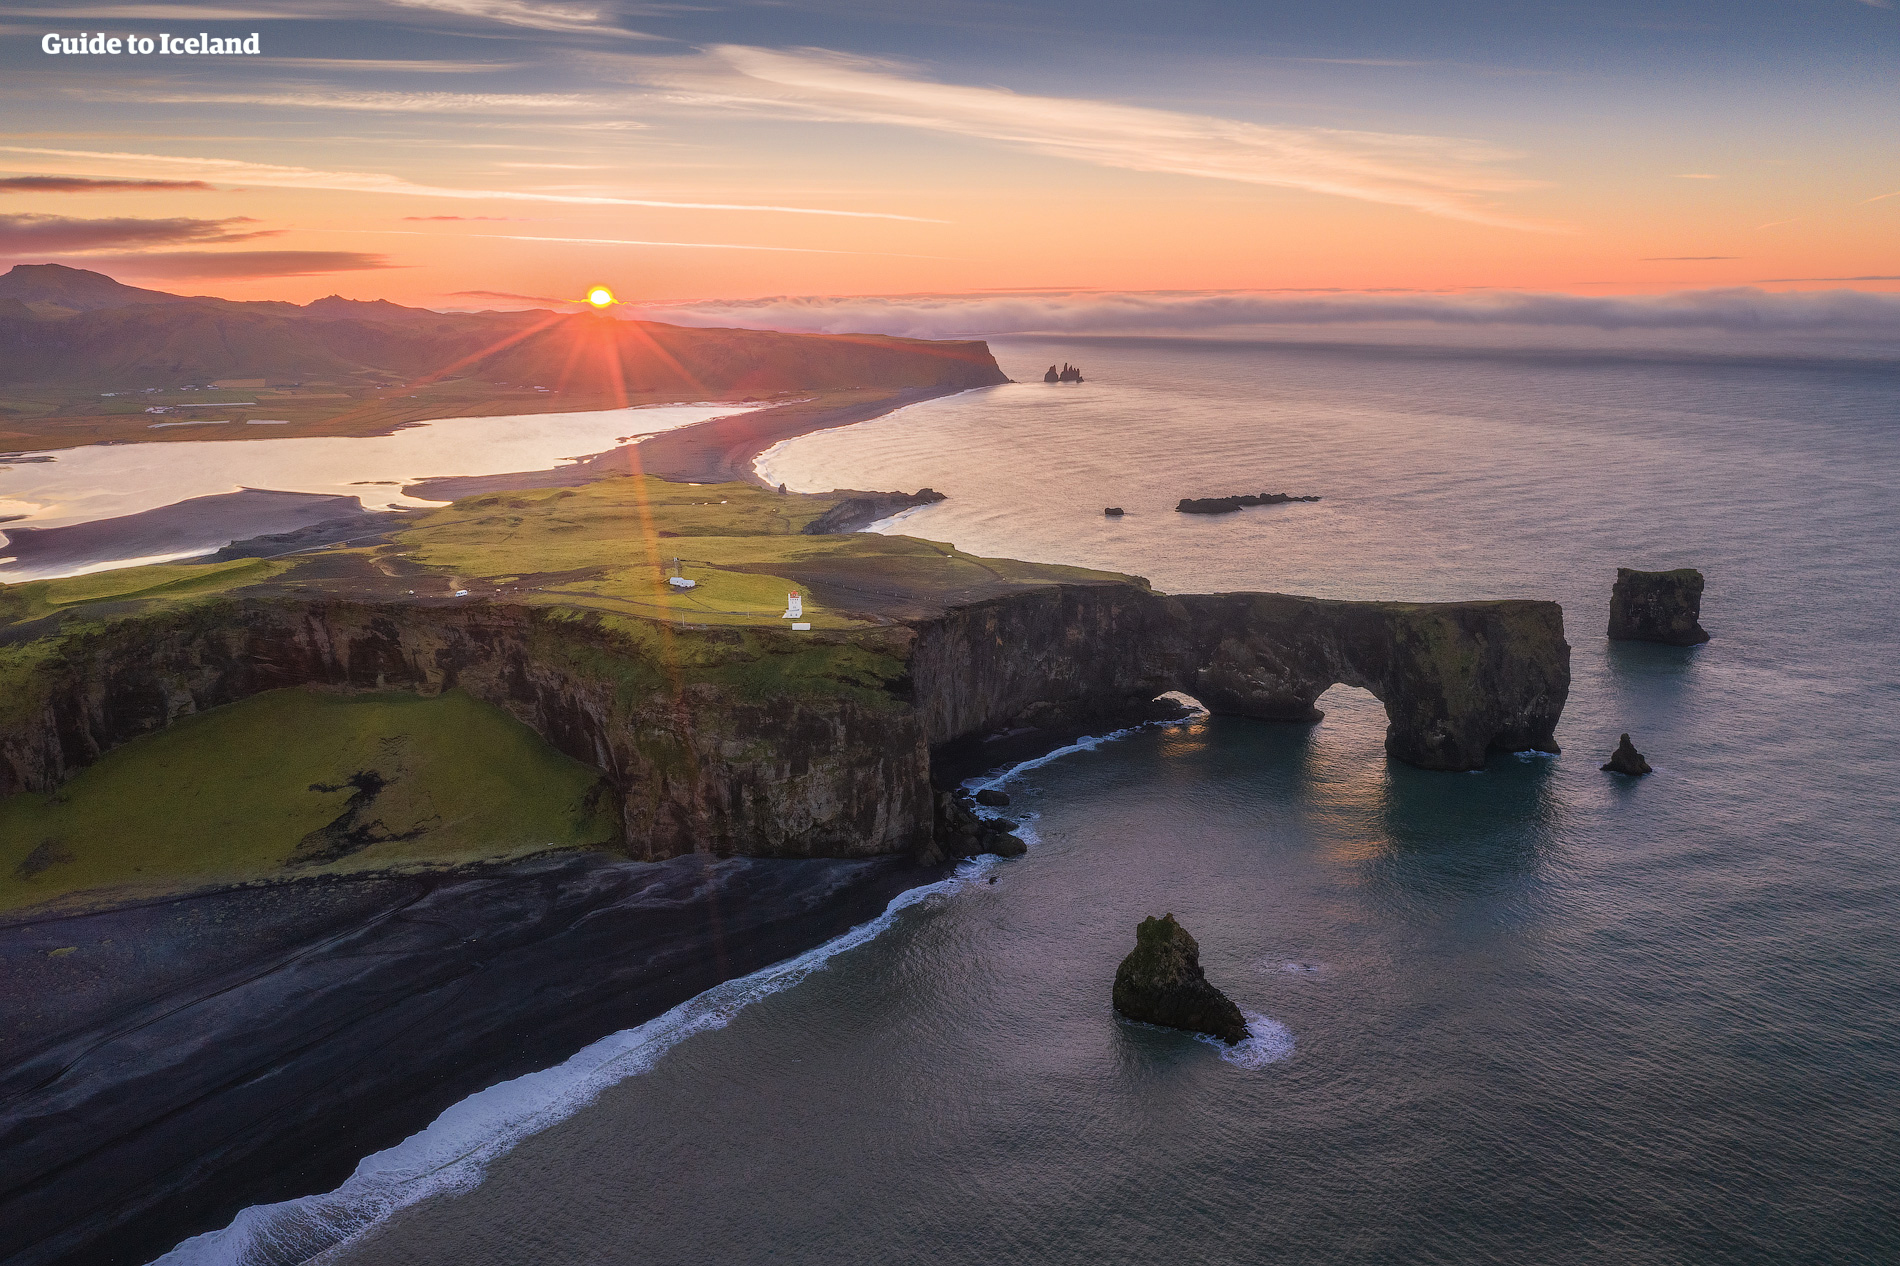 A sunset over the Dyrholaey cliffs on Iceland's south coast